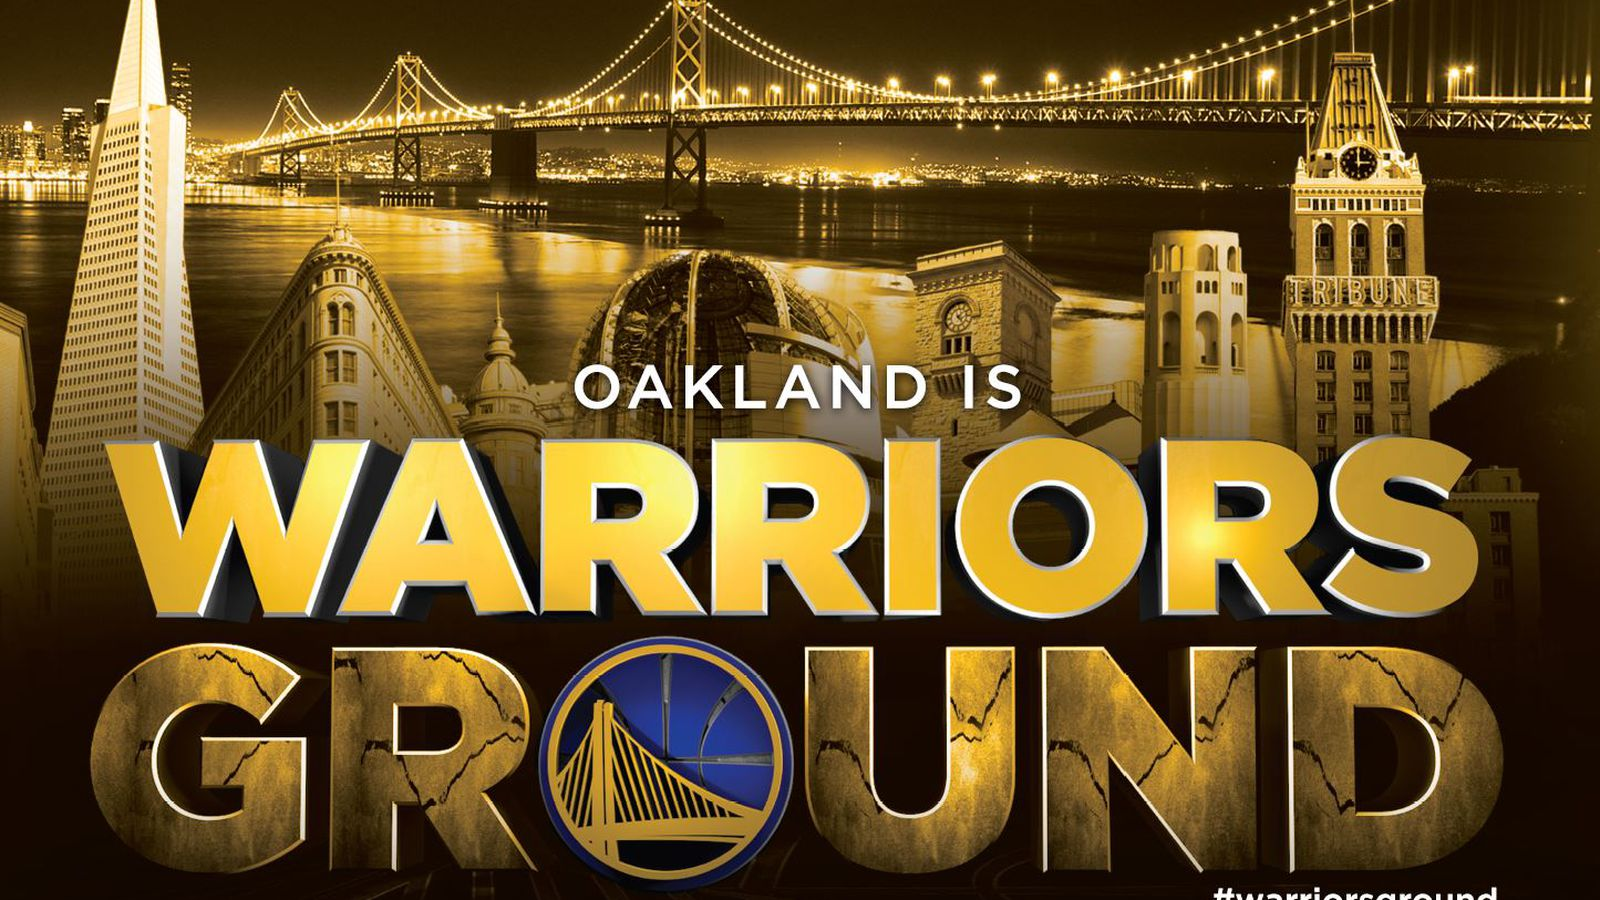 I M Proud Oakland Is Home To Golden State Warriors In 2015 Nba